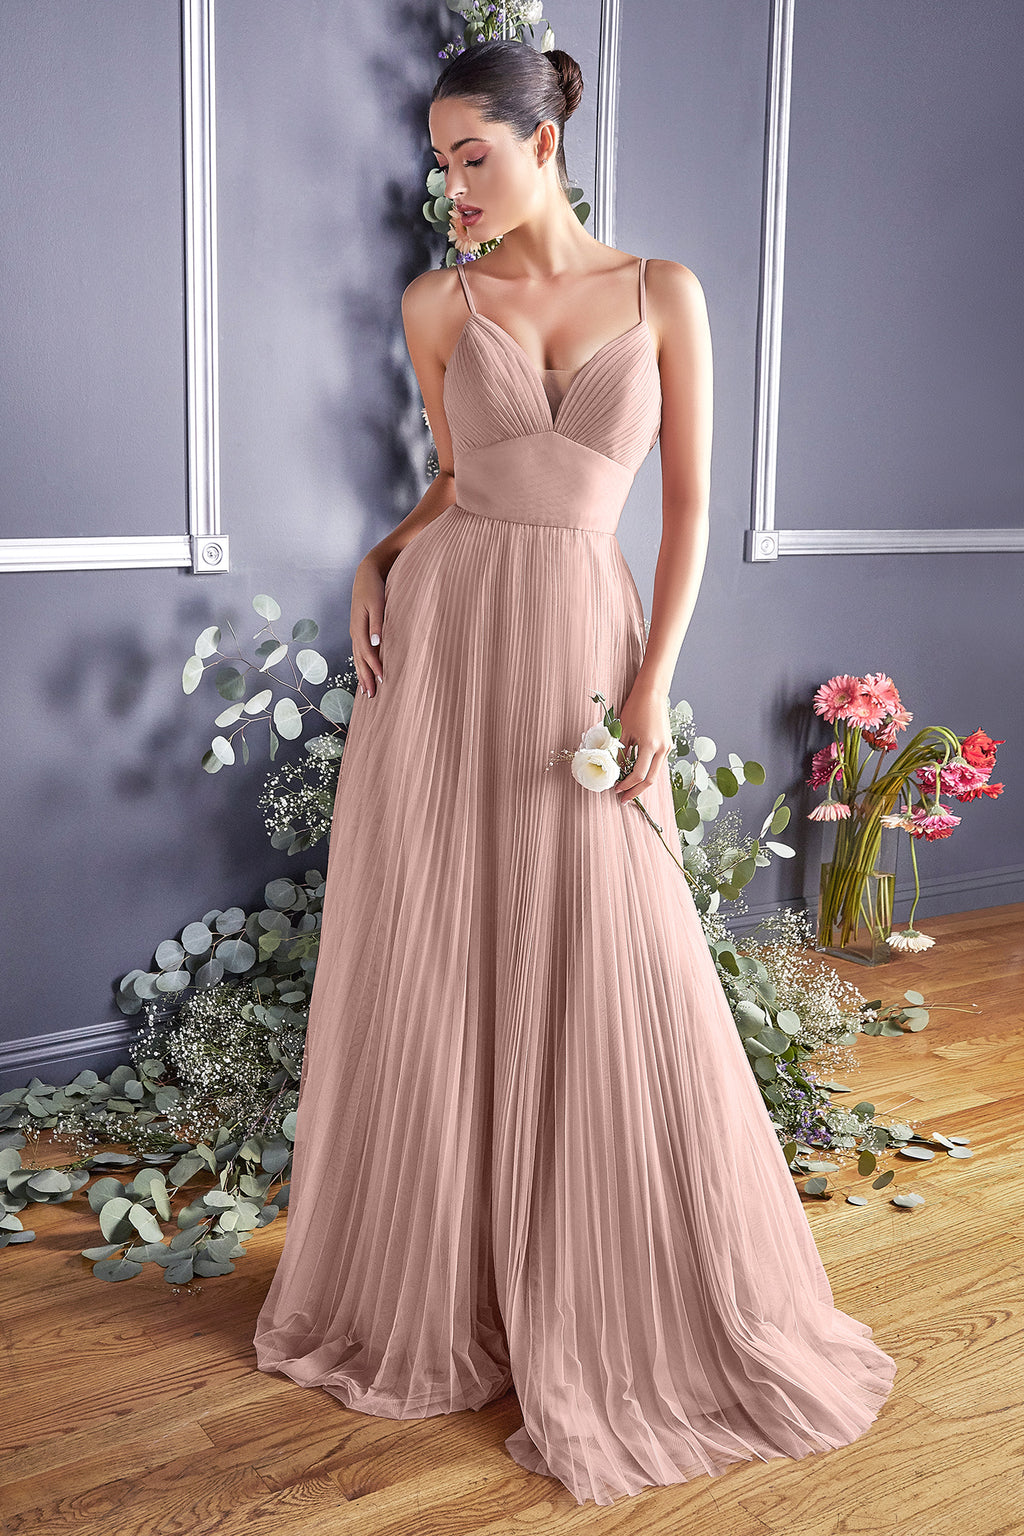 Elegant Long Gown with Deep Neckline and Pleated Long Skirt (SIZES 4-10) #CDCD184